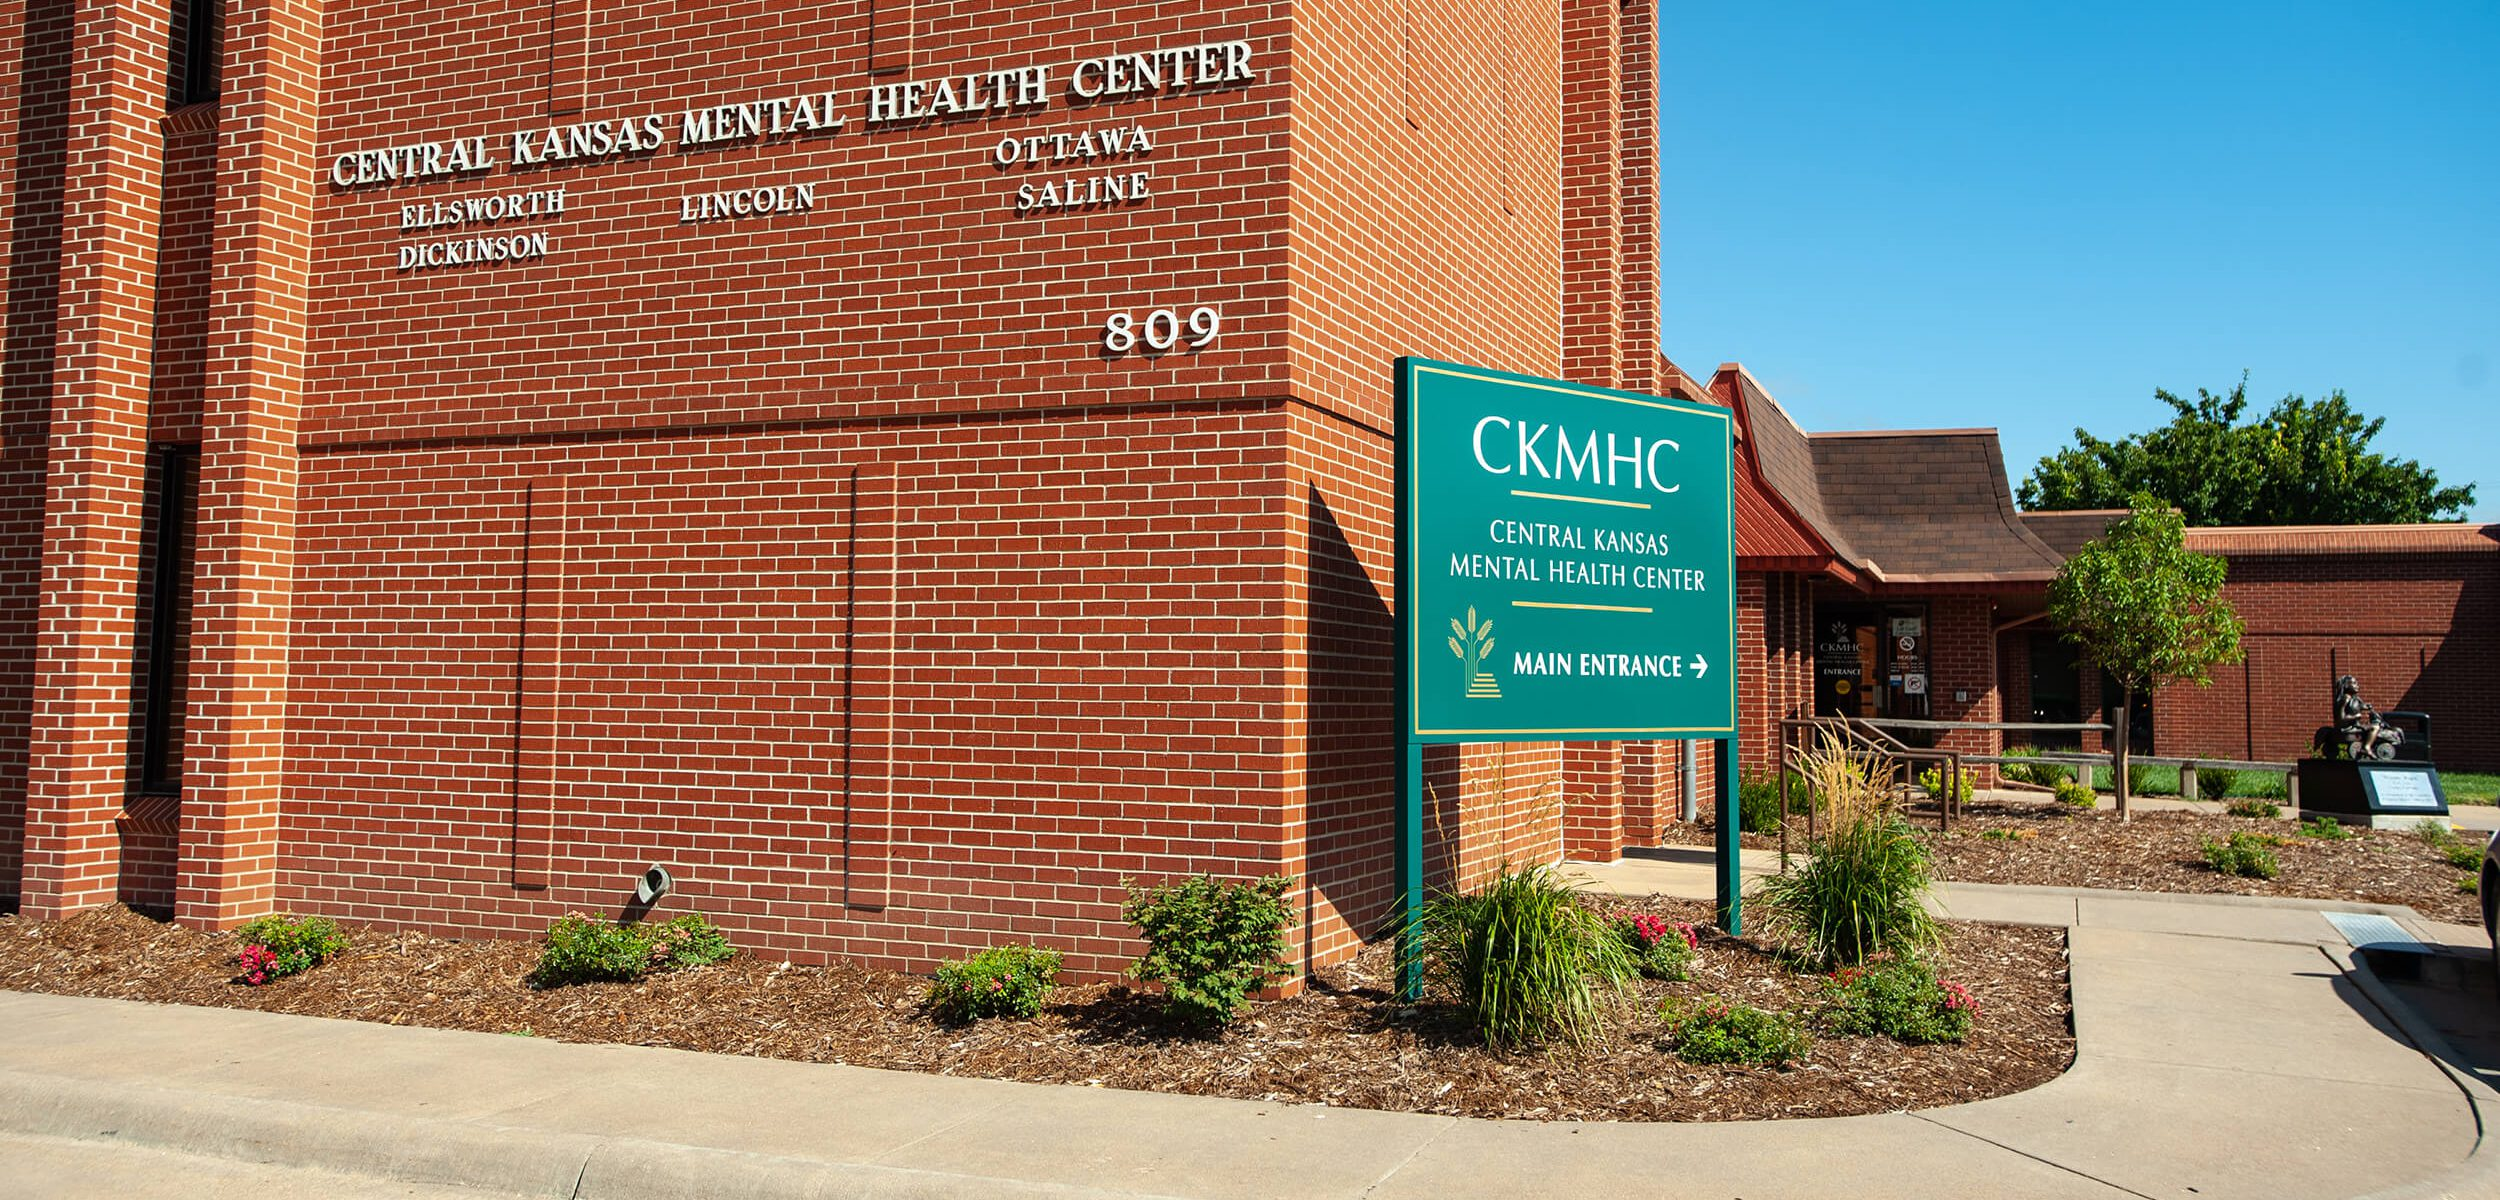 Central Kansas Mental Health Center building